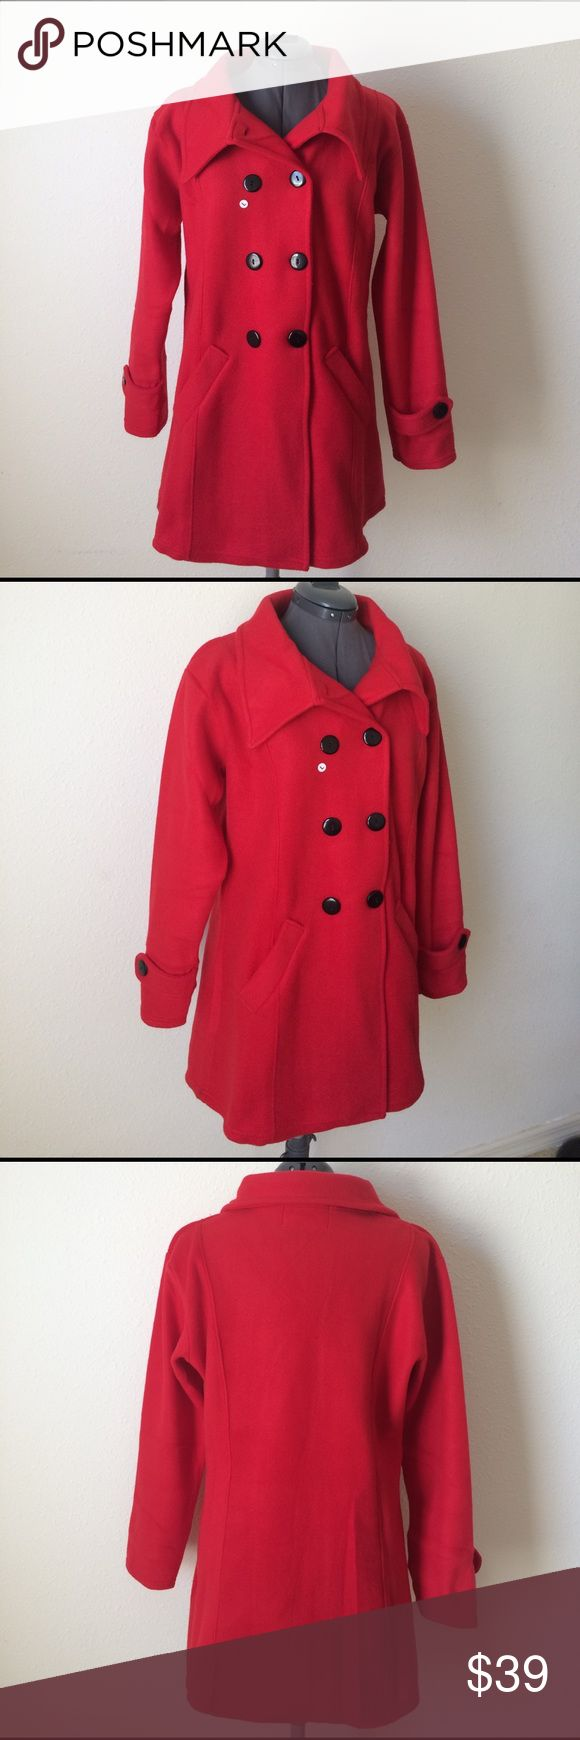 🌟New🌟Red sweater pea coat w Black buttons Red pea coat with black buttons. Double breasted. 100% spun polyester. Soft and comfortable. Cute and classy. Perfect addition to your fall wardrobe. Light Fall jacket. Jackets & Coats Pea Coats